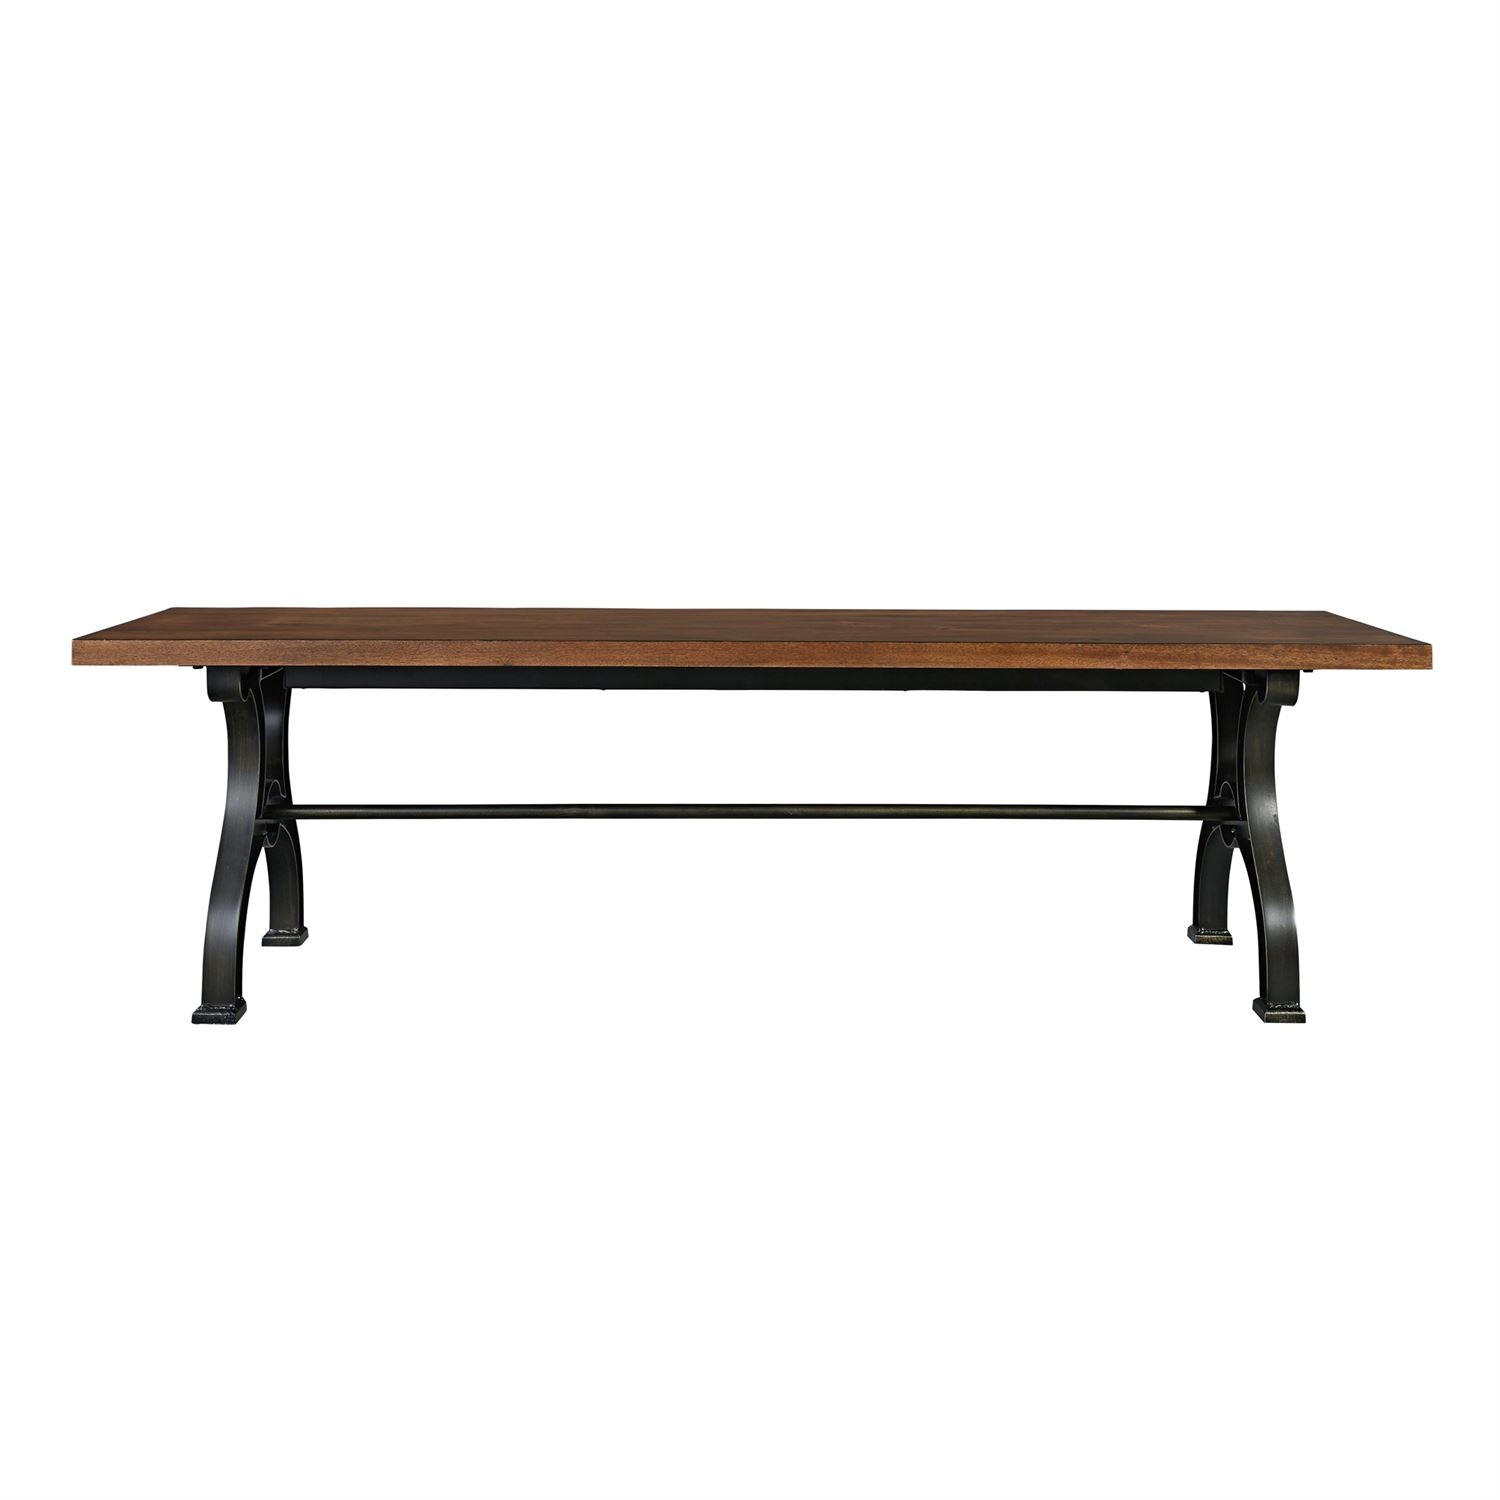 Superior Liberty Furniture Dining Room Bench (RTA) 411 C9000B   Smith Village Home  Furniture   Jacobus And York, PA